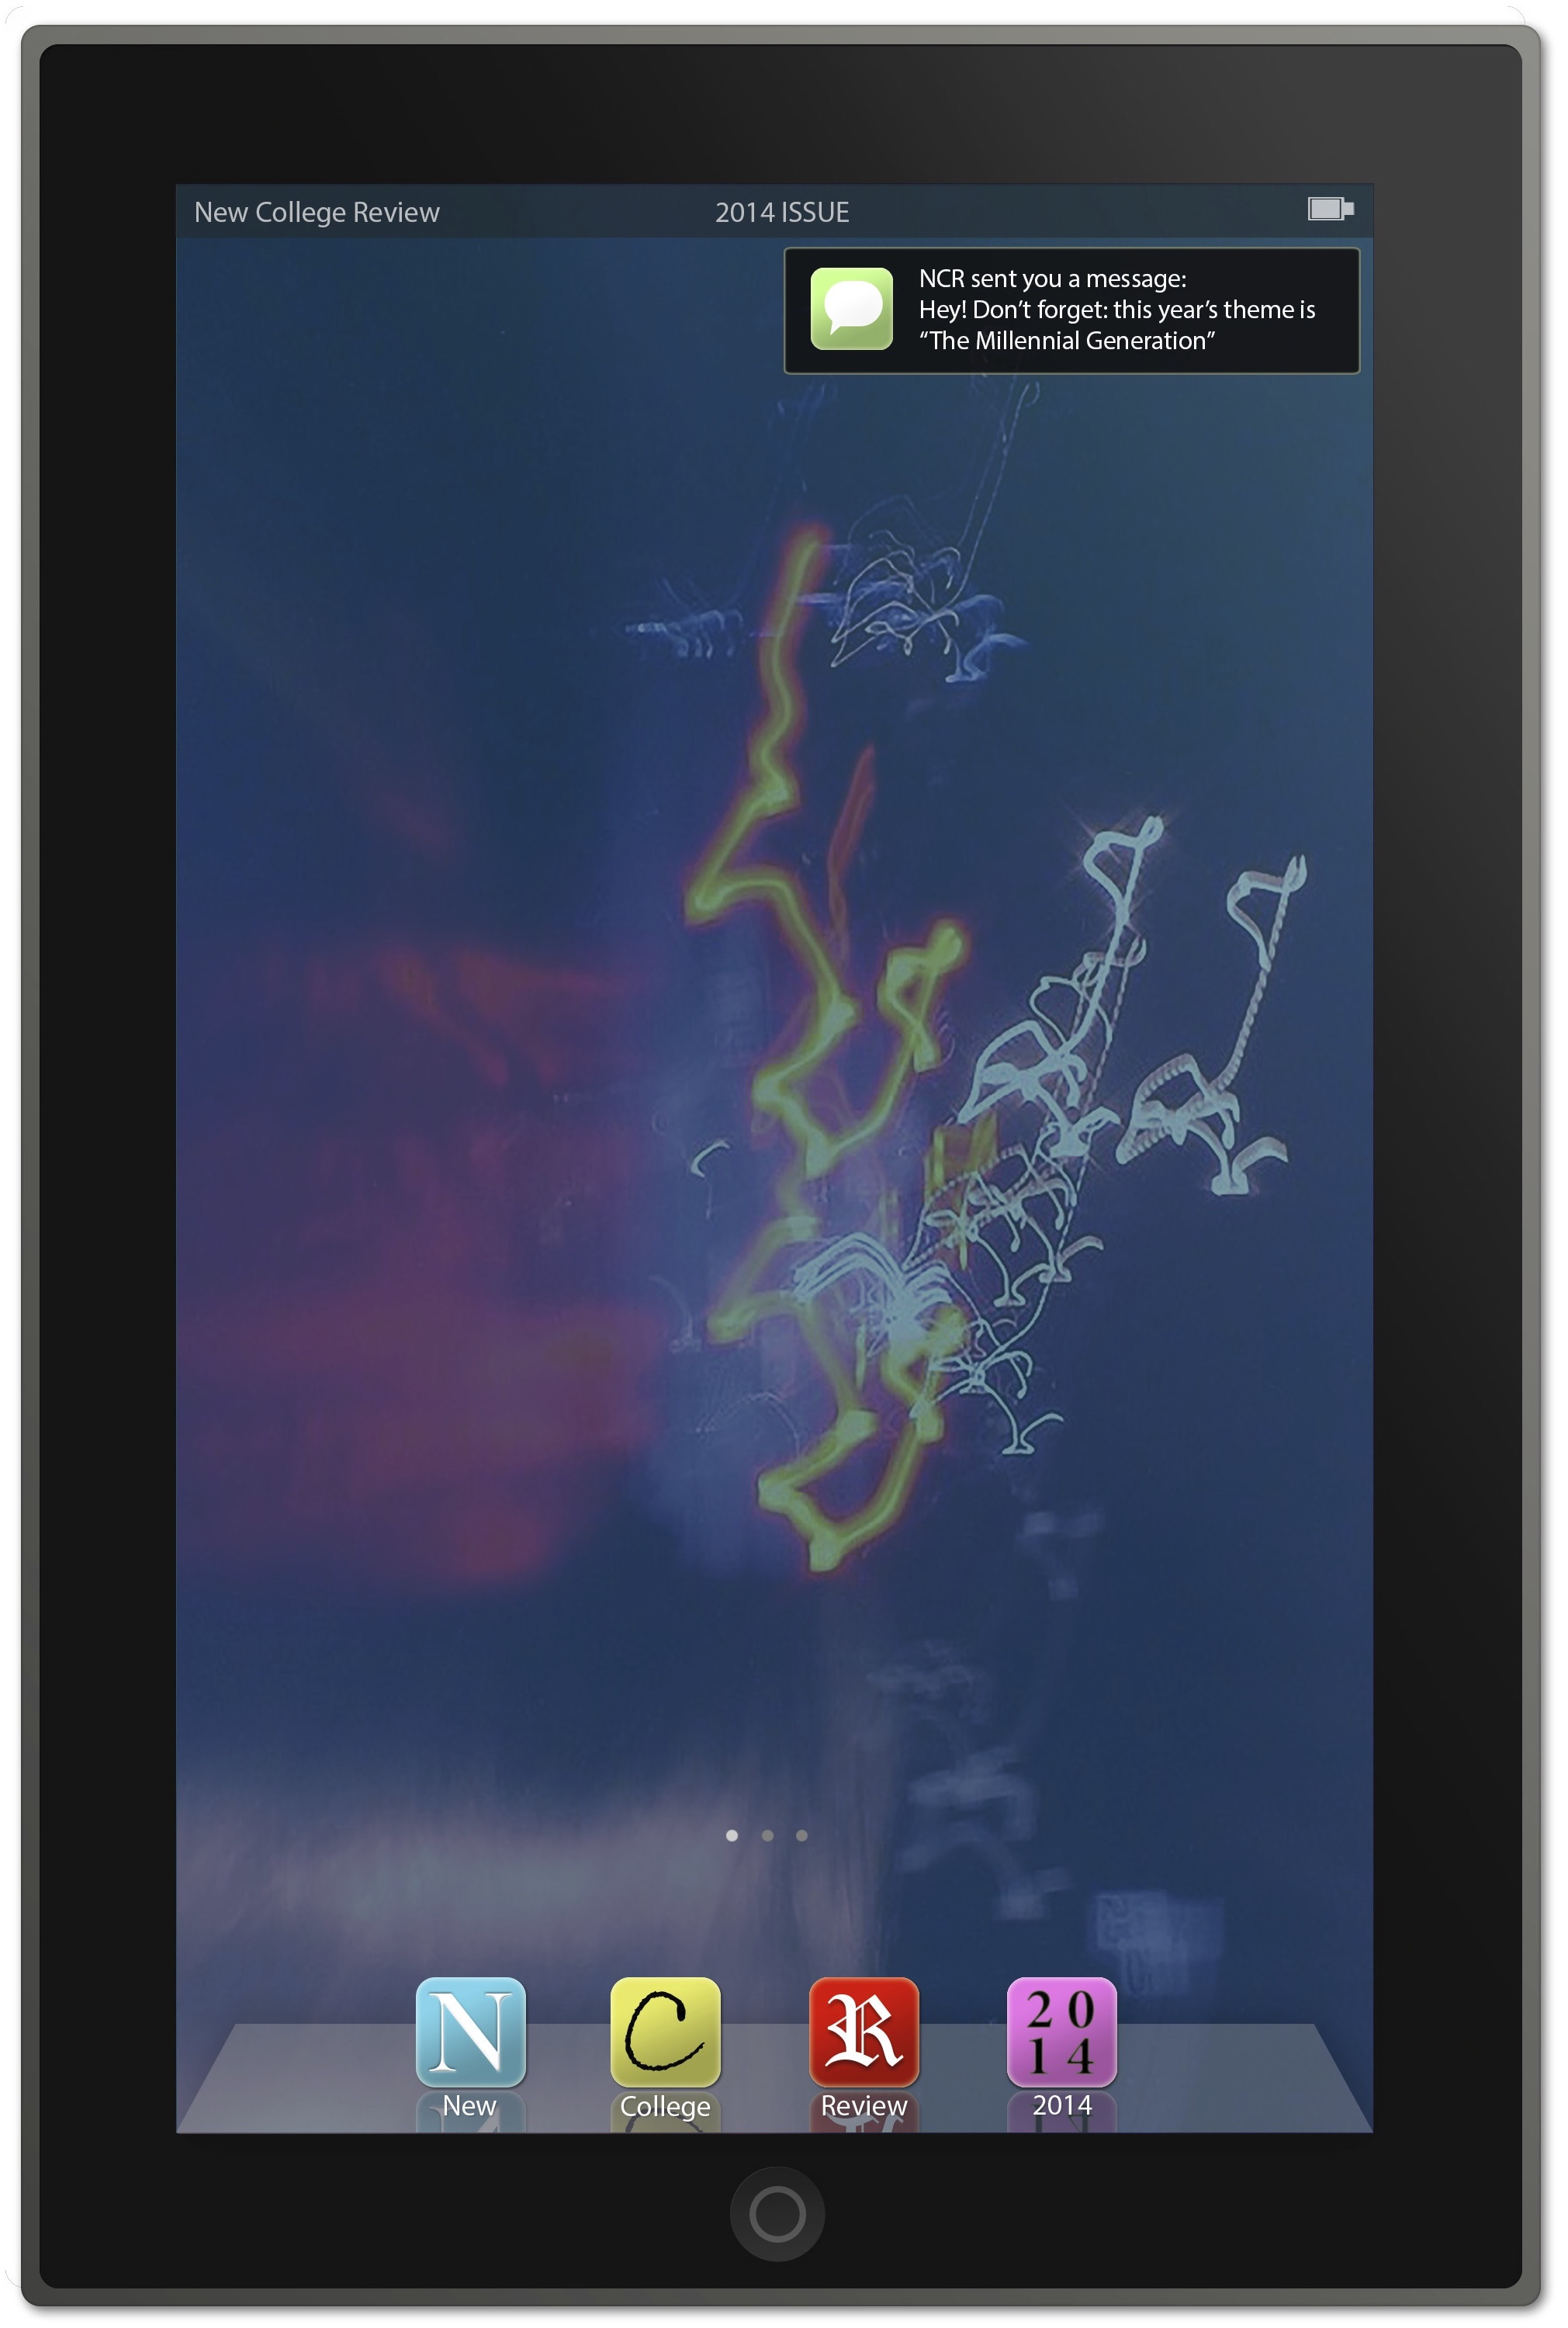 Cover of The New College Review, 2014 issue featuring a tablet screen